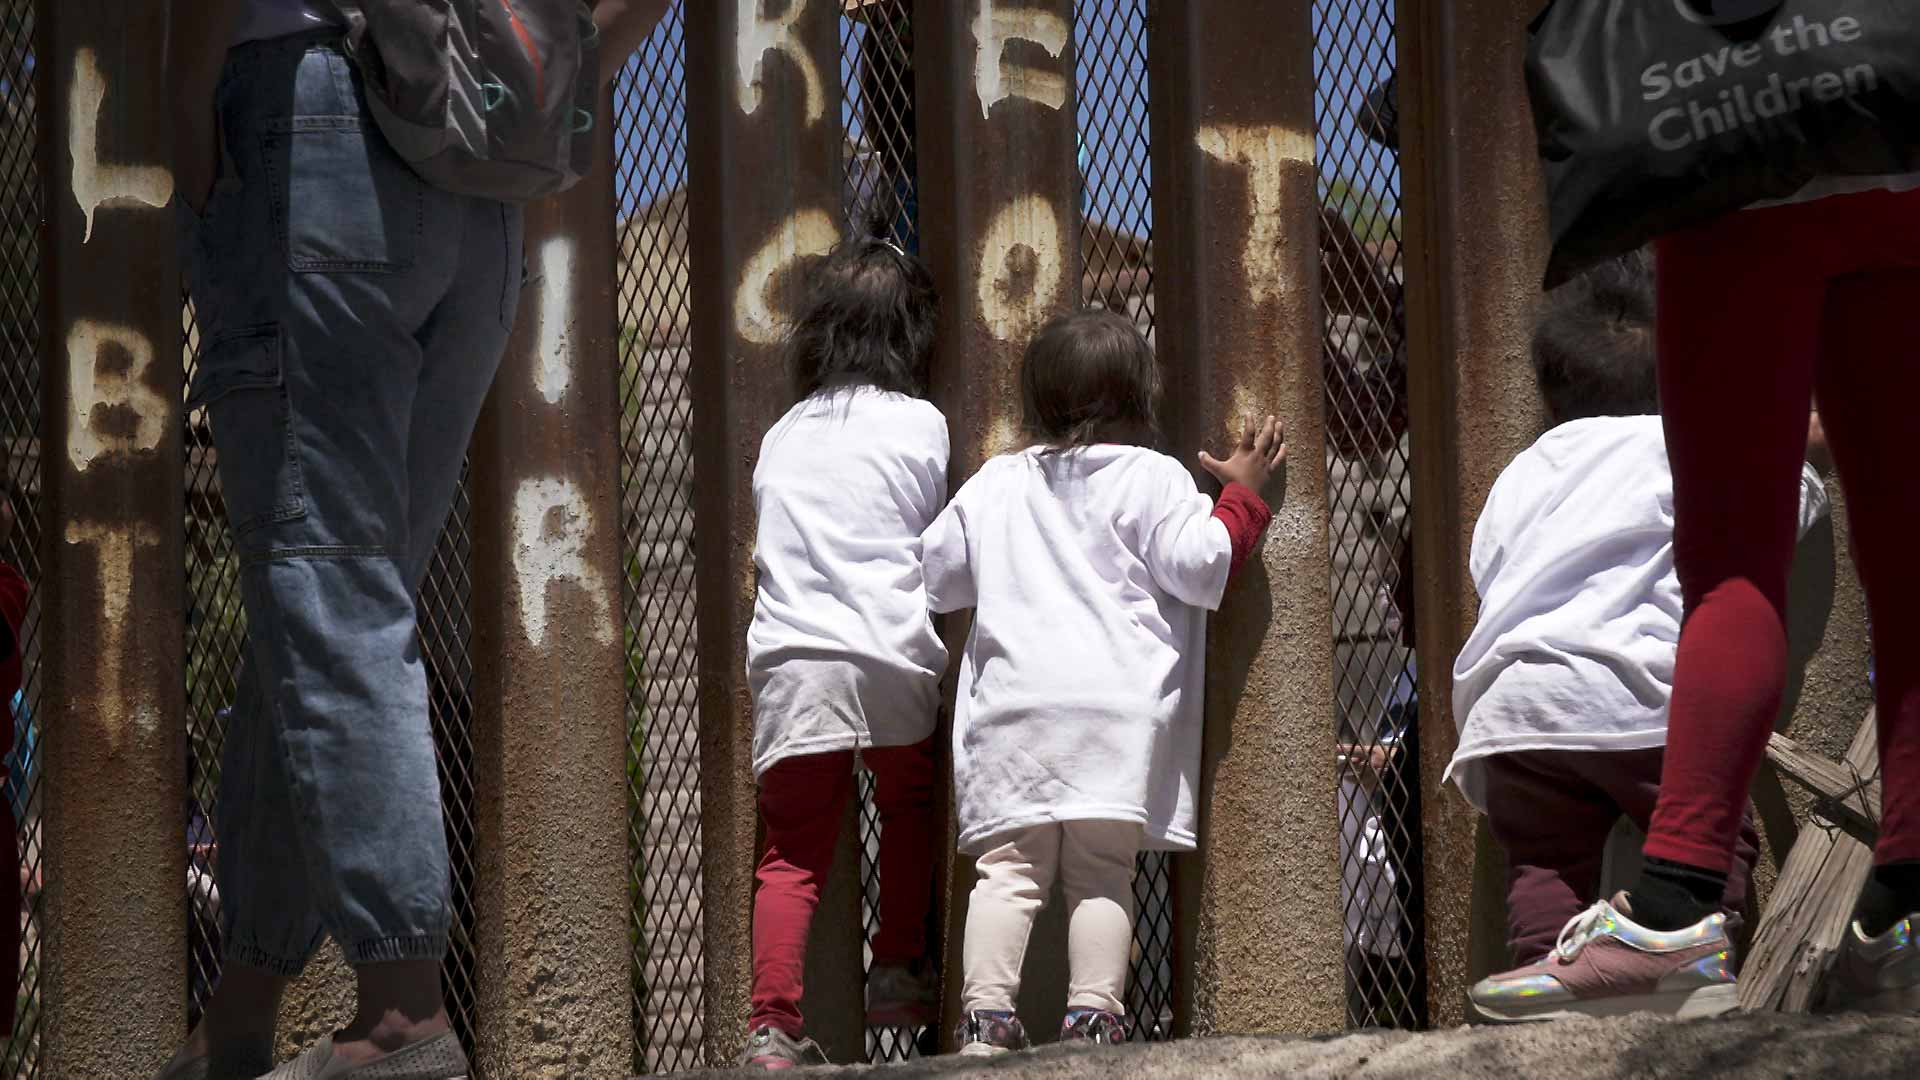 Children peer through the border fence in Nogales, Sonora during a march led by migrants on April 30, 2021 who wanted to call attention to immigration policies in the United States that have prevented them from entering the country while they seek political asylum.